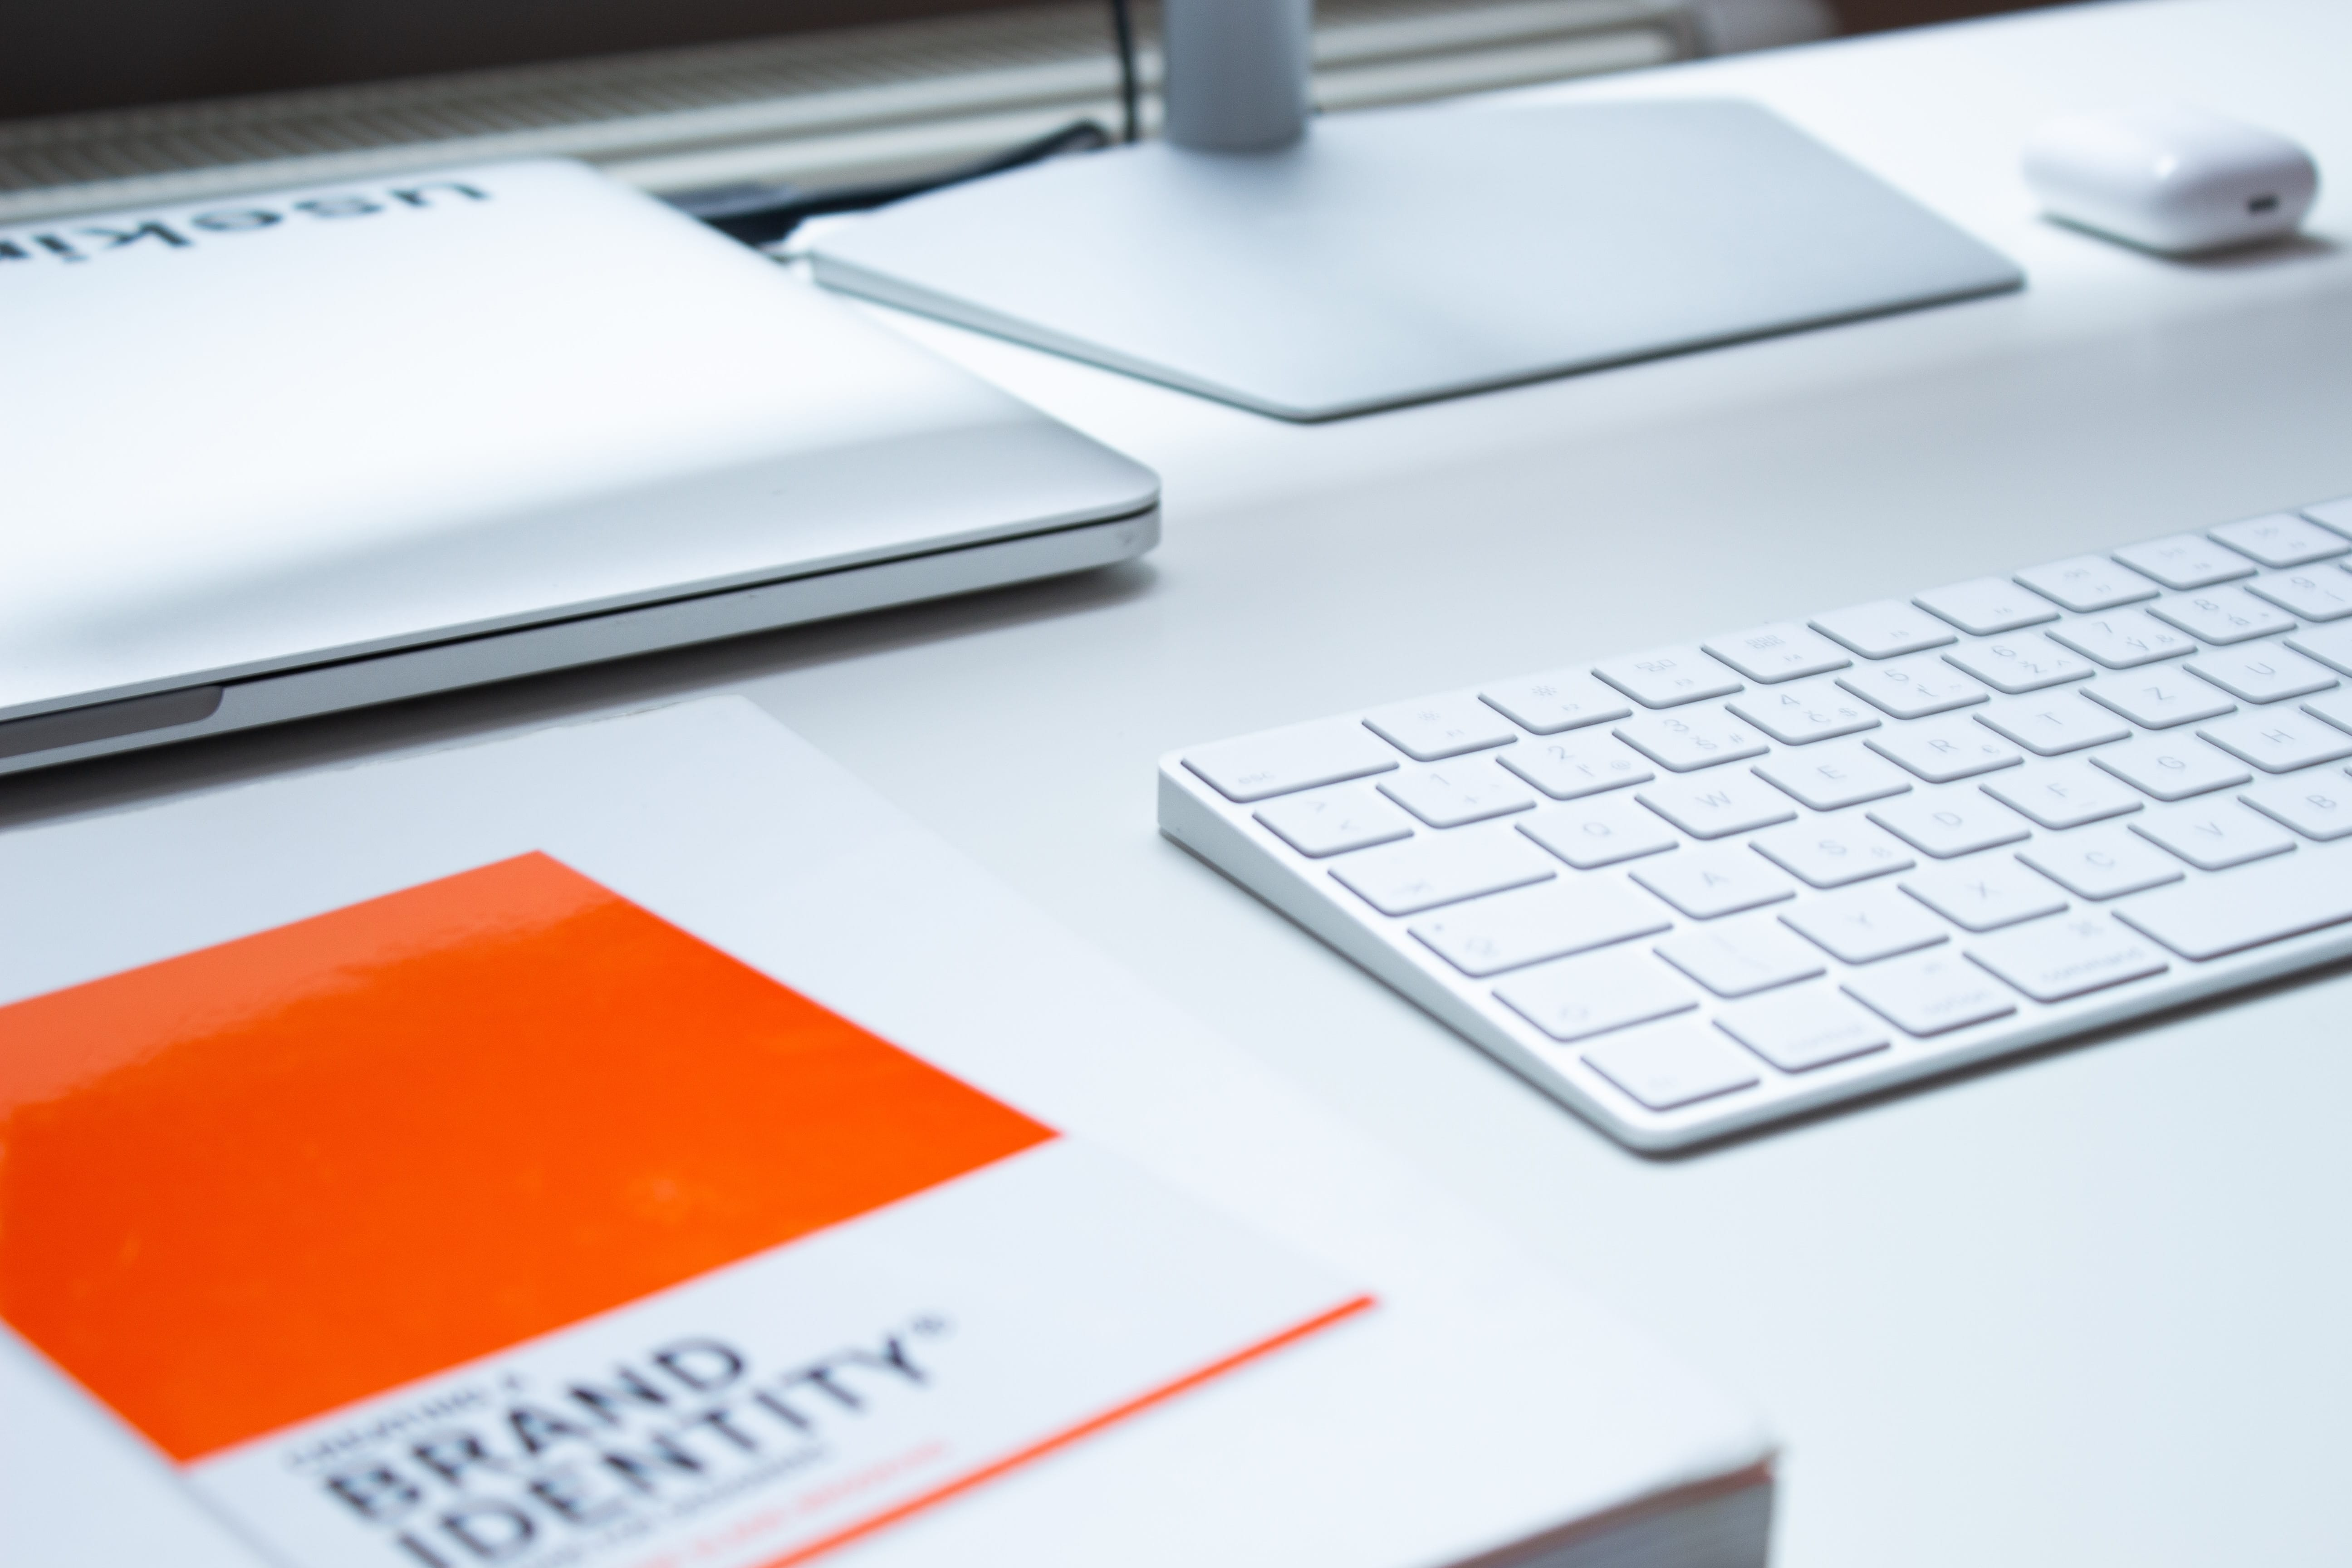 "White desk with white laptop and keyboard and orange & white book titled ""Brand Identity."" Image by Patrik Michalick, via Unsplash.com."